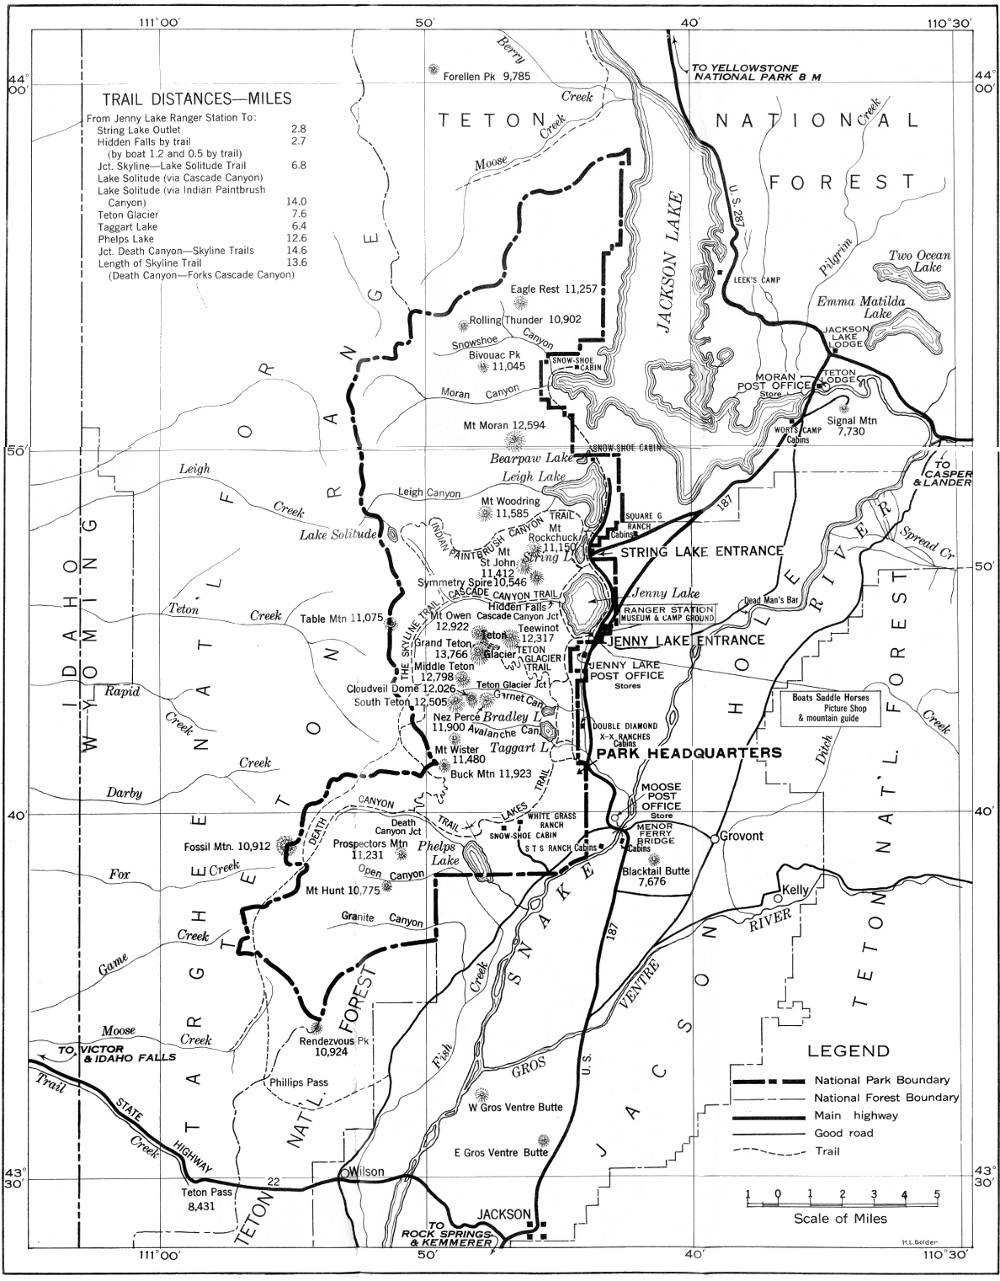 The Project Gutenberg eBook of Grand Teton National Park (1937 ... on rocky mountain national park, california map, bryce canyon national park, wyoming map, teton range map, zion national park, national mall and memorial parks map, idaho map, teton crest trail map, mesa verde national park, badlands national park, arches national park, devils tower map, yellowstone map, united states map, yosemite national park, kings canyon national park map, devils tower national monument, beartooth mountains map, denali national park and preserve map, bryce canyon map, olympic national park, yellowstone national park, wind river range map, glacier national park, amistad national recreation area map, teton range, rocky mountains, montana map, snake river, teton fault map, canyonlands national park, acadia national park, redwood national park map, great smoky mountains national park, jackson hole, sequoia national park, usa map, sequoia national park map,